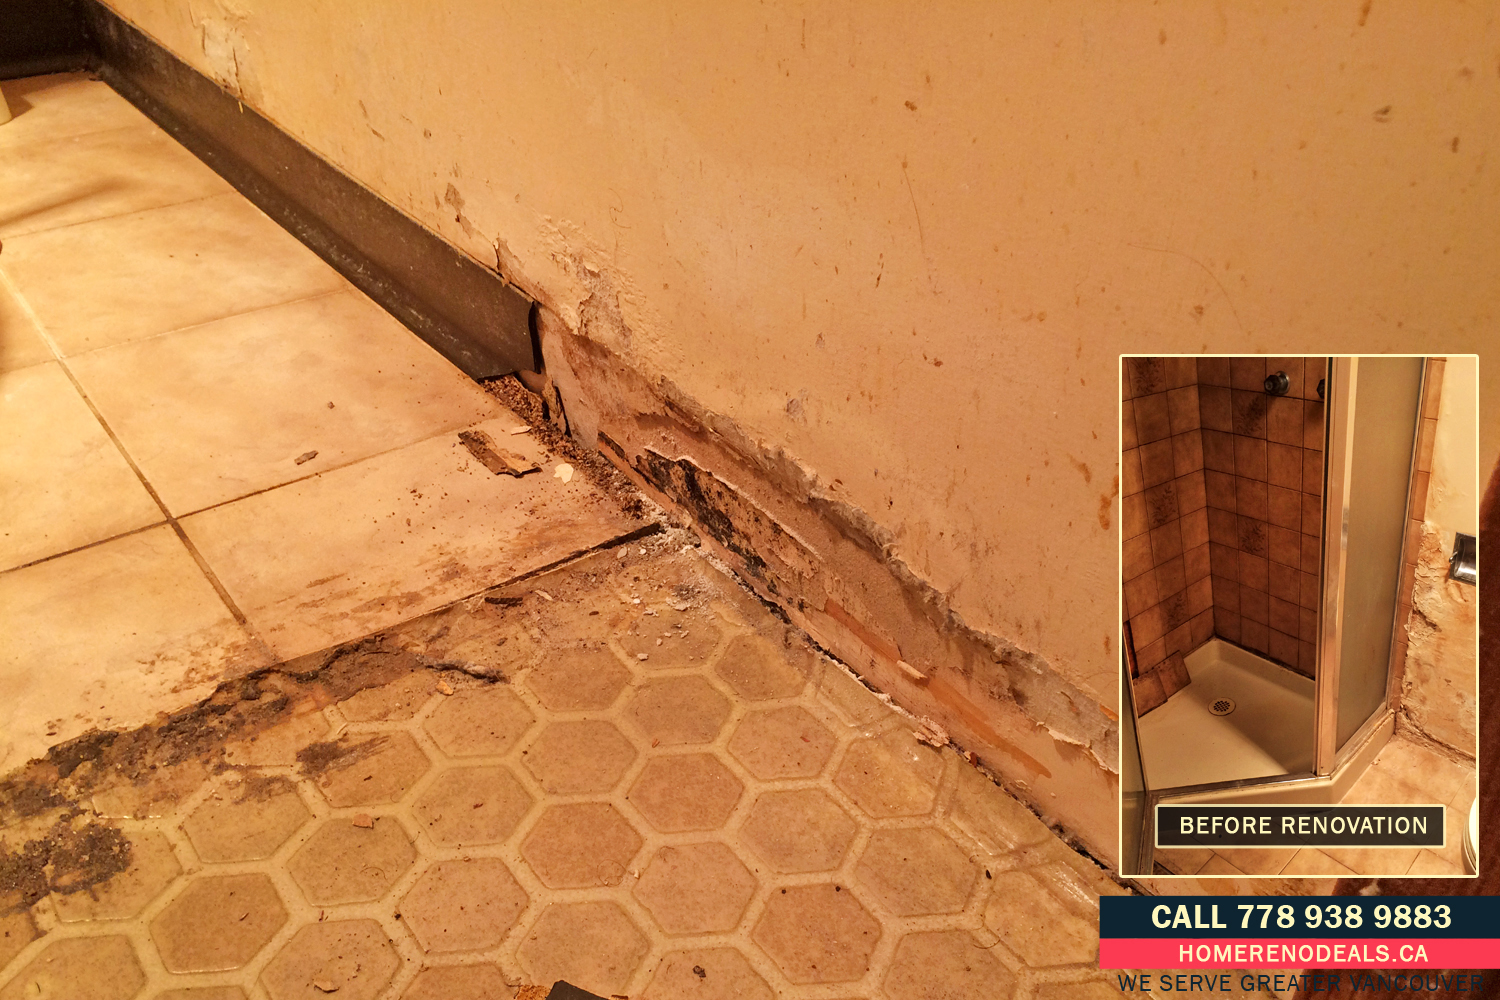 Water damaged bathroom walls and floor